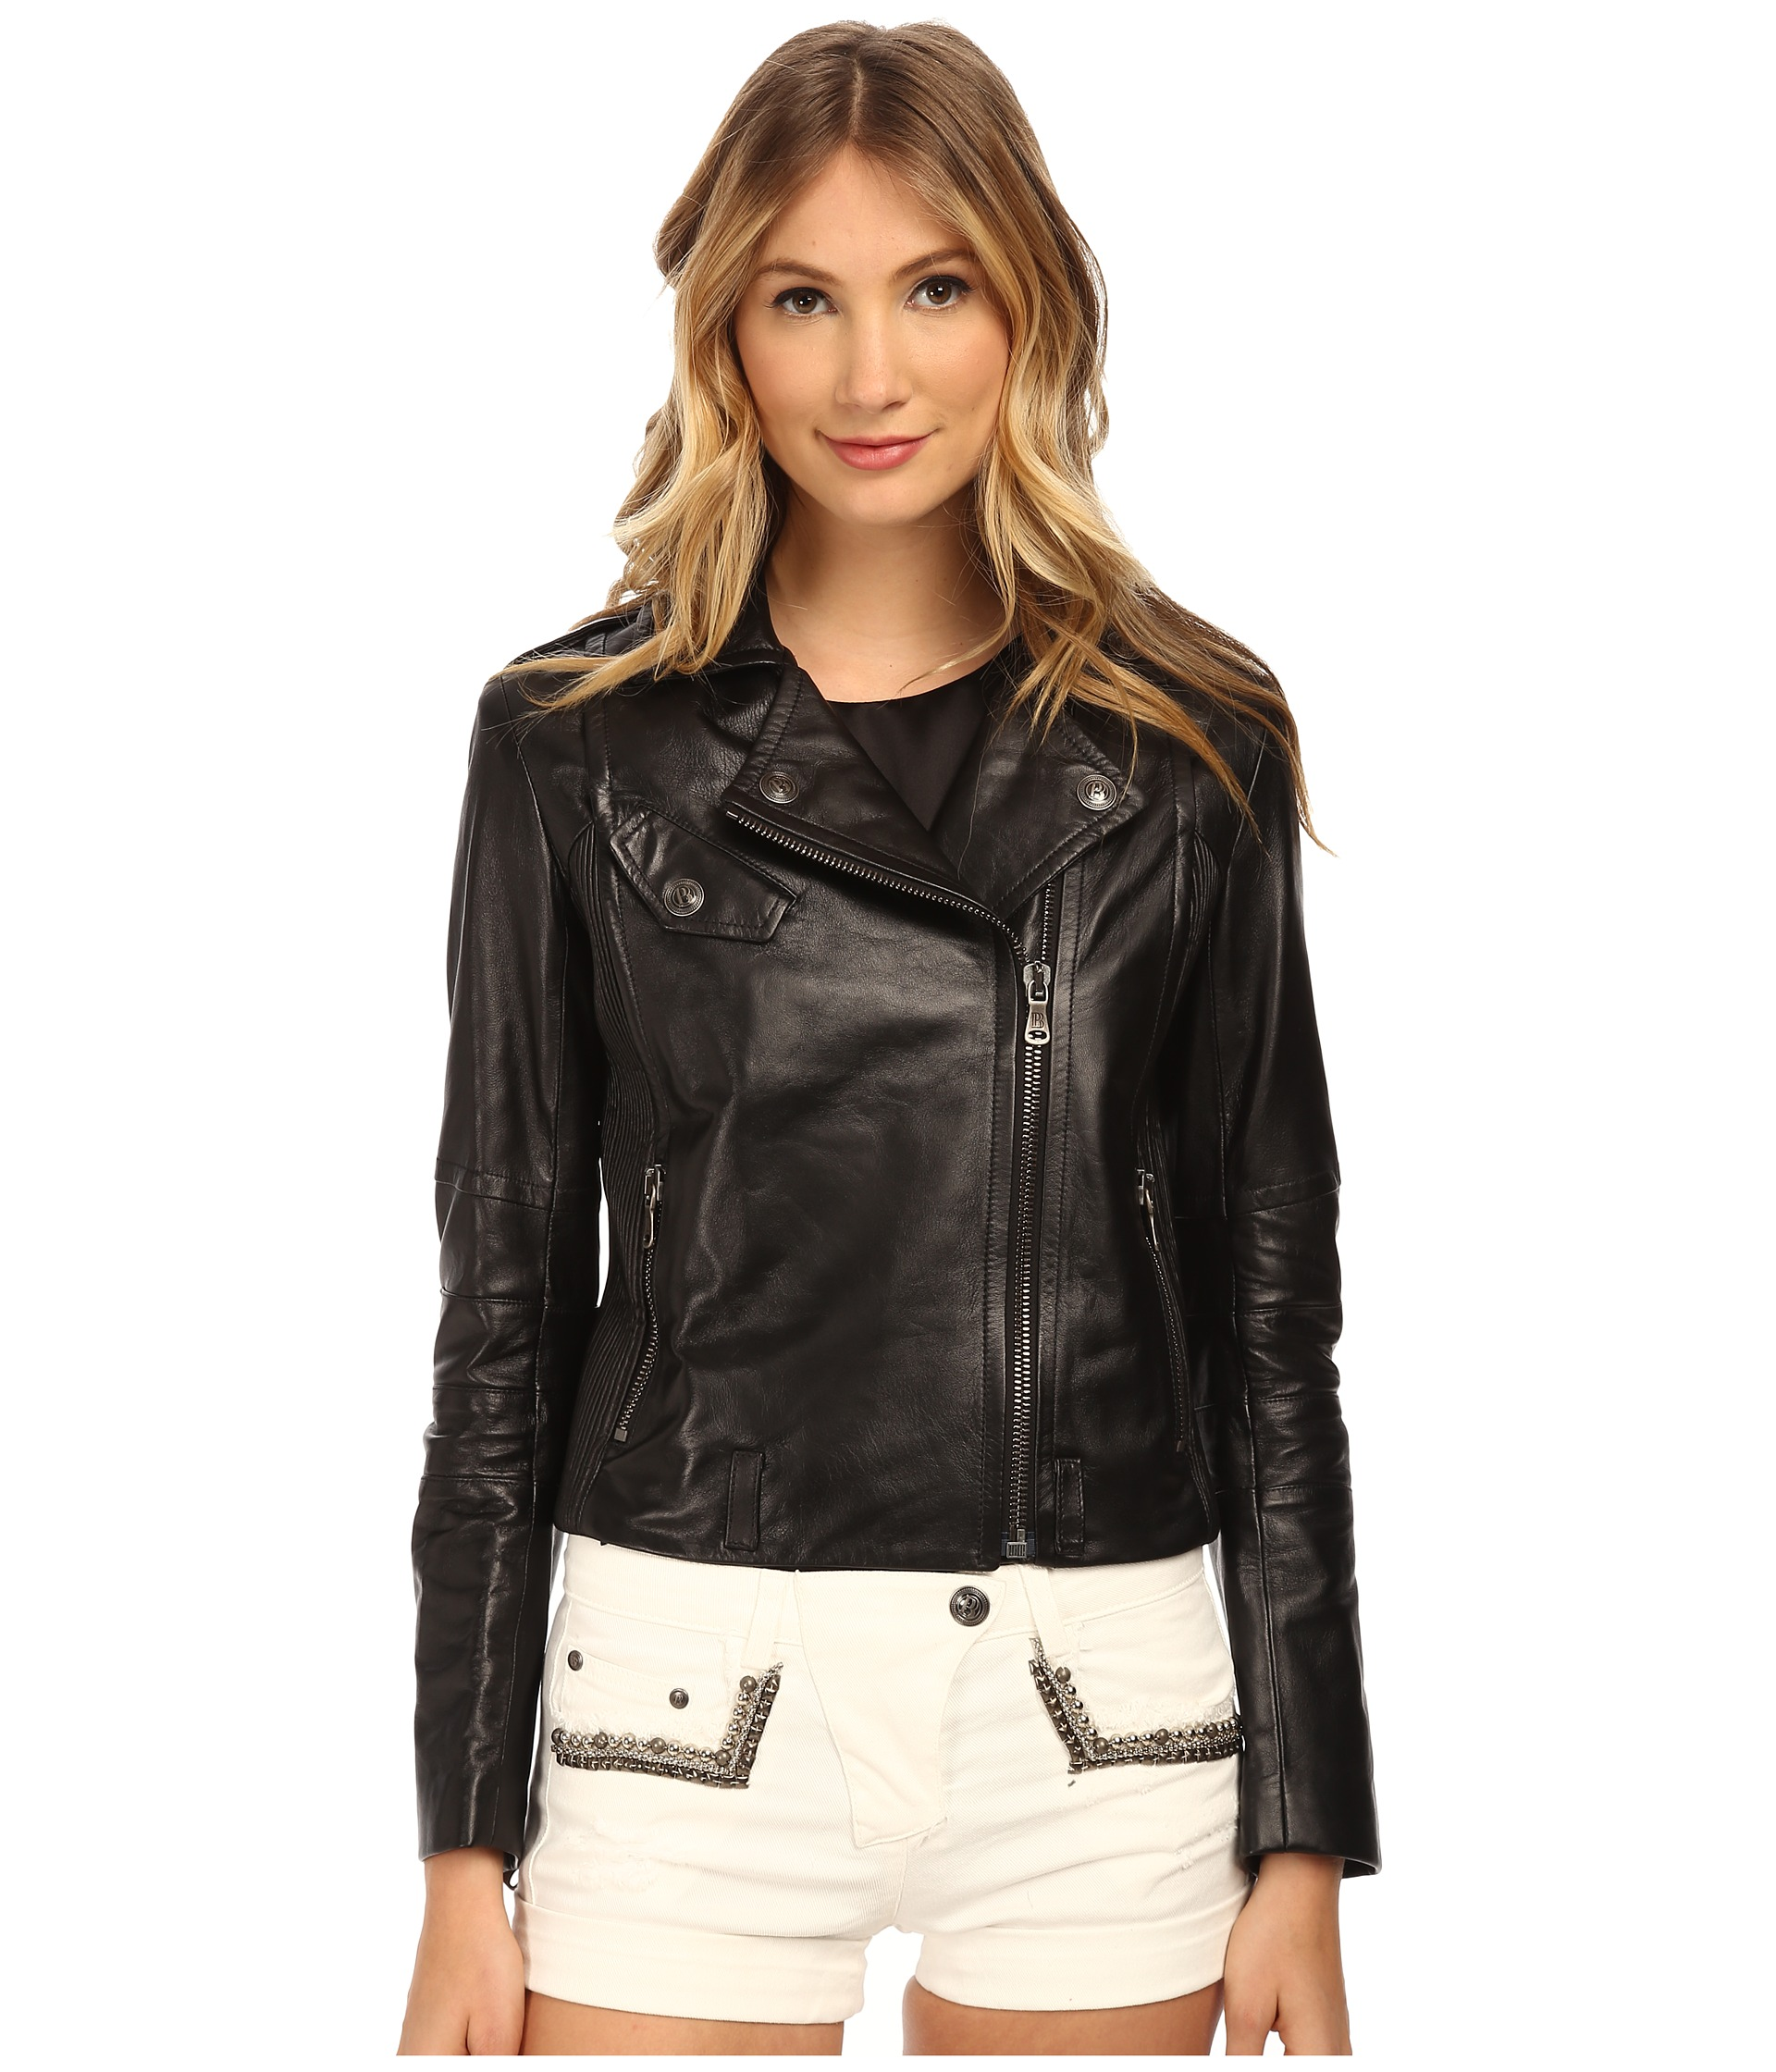 Little girls leather jackets. Cheap clothing stores